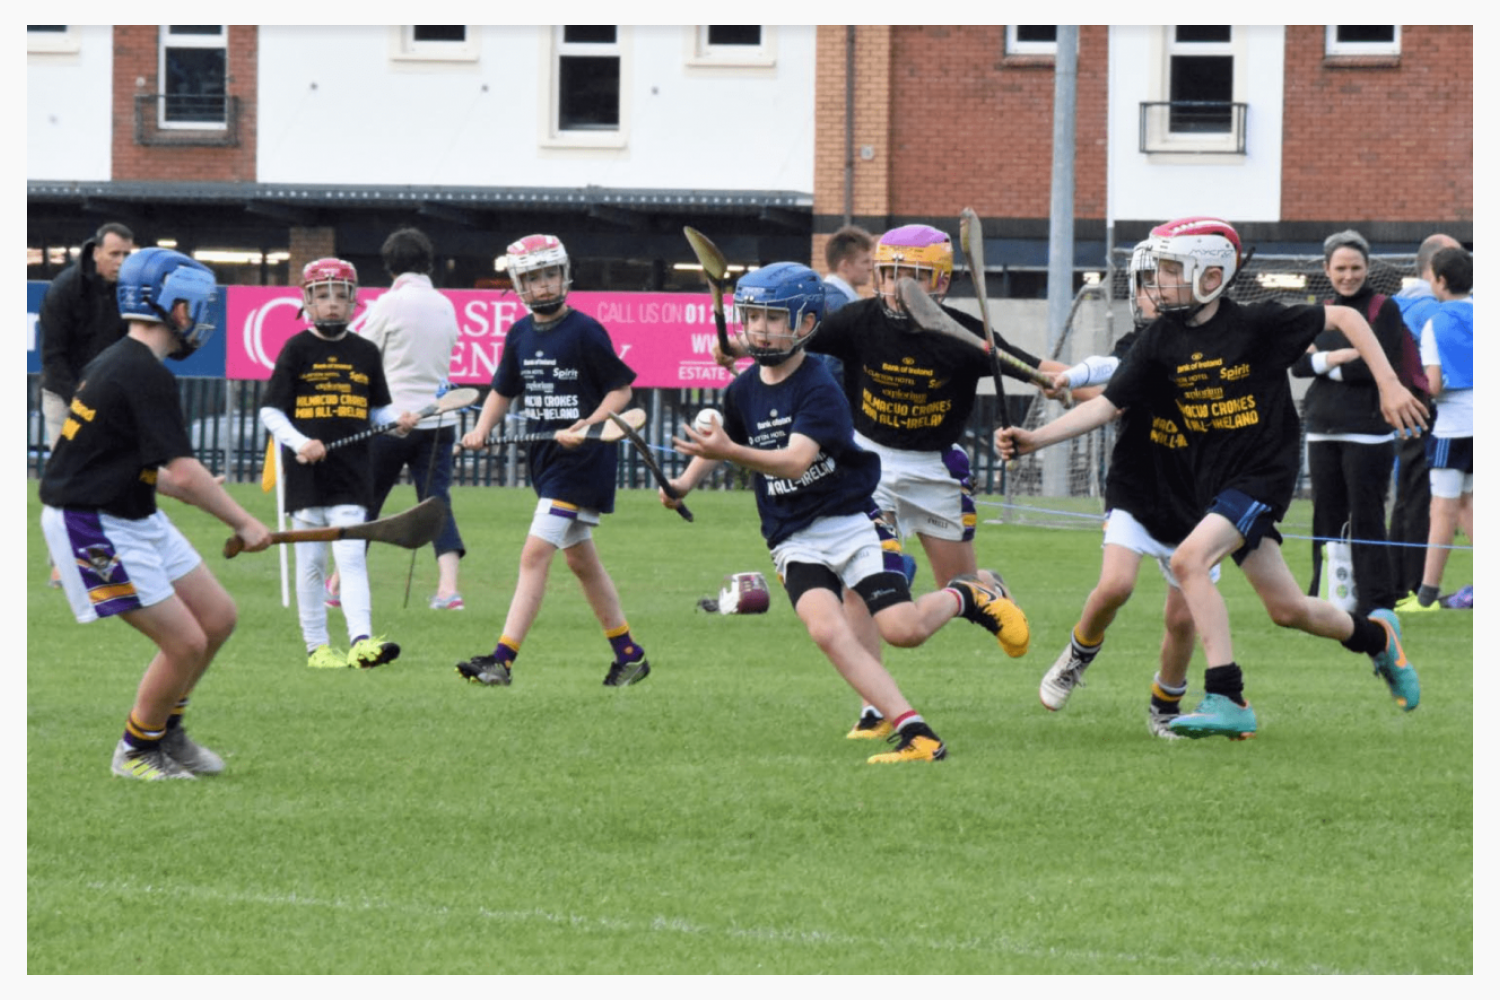 Photos from Mini All Ireland Hurling Finals